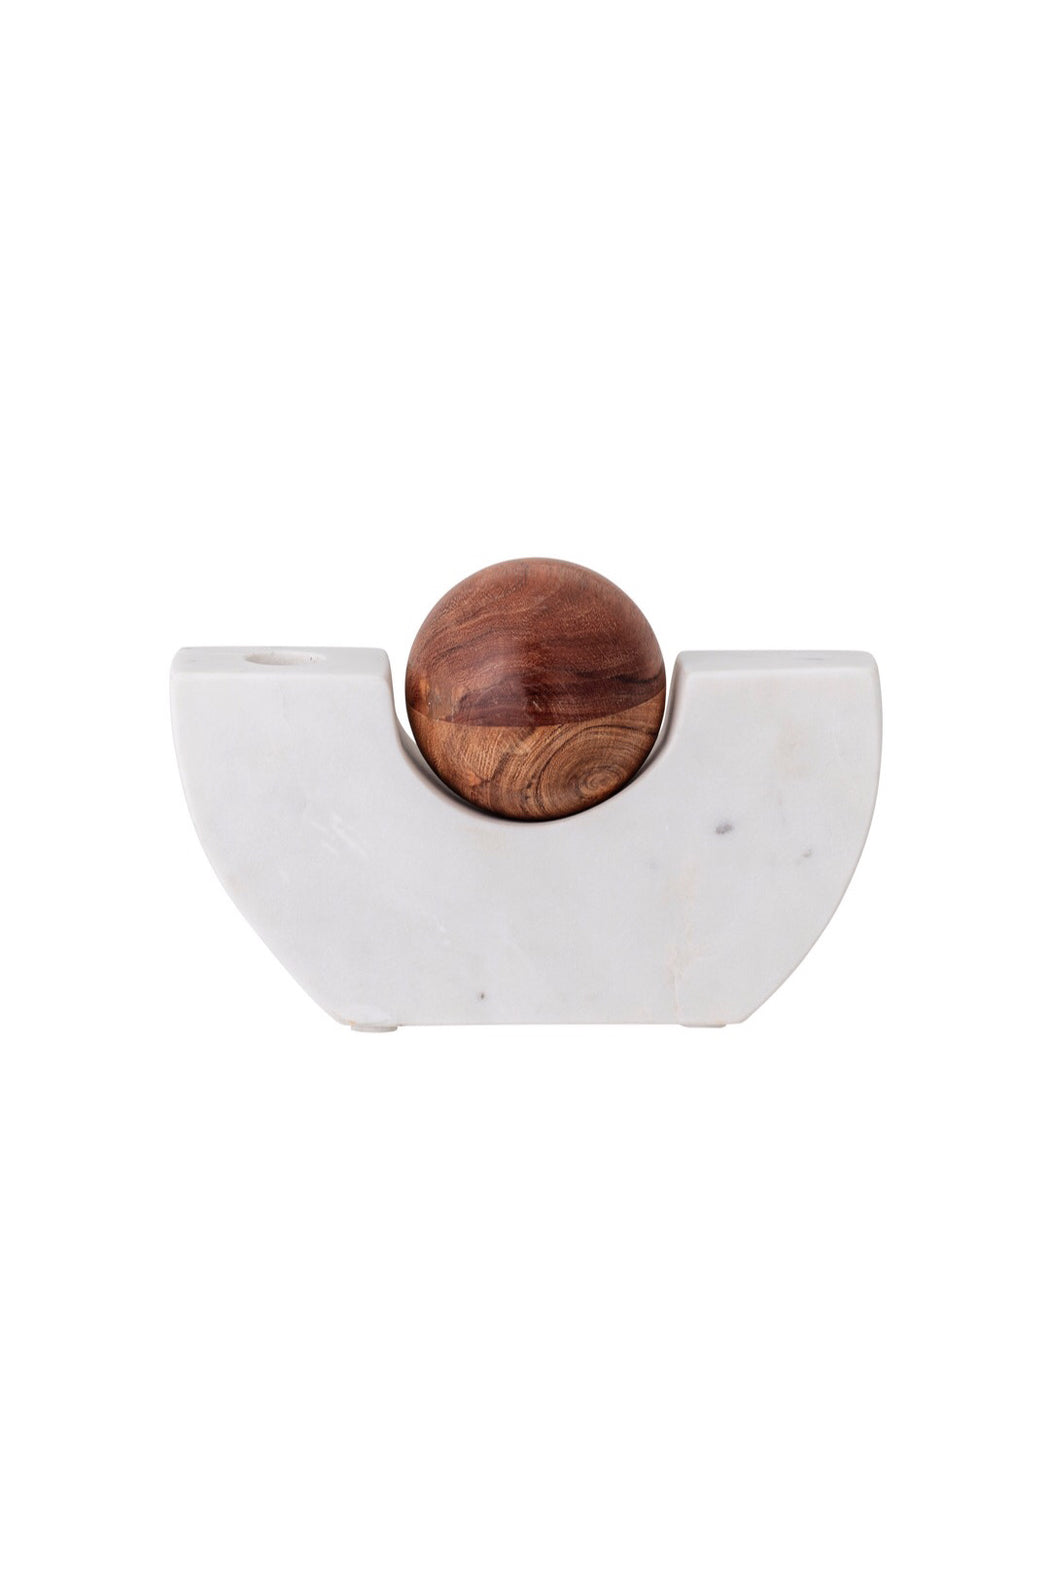 Crescent Marble and Wooden Ball Taper Holder